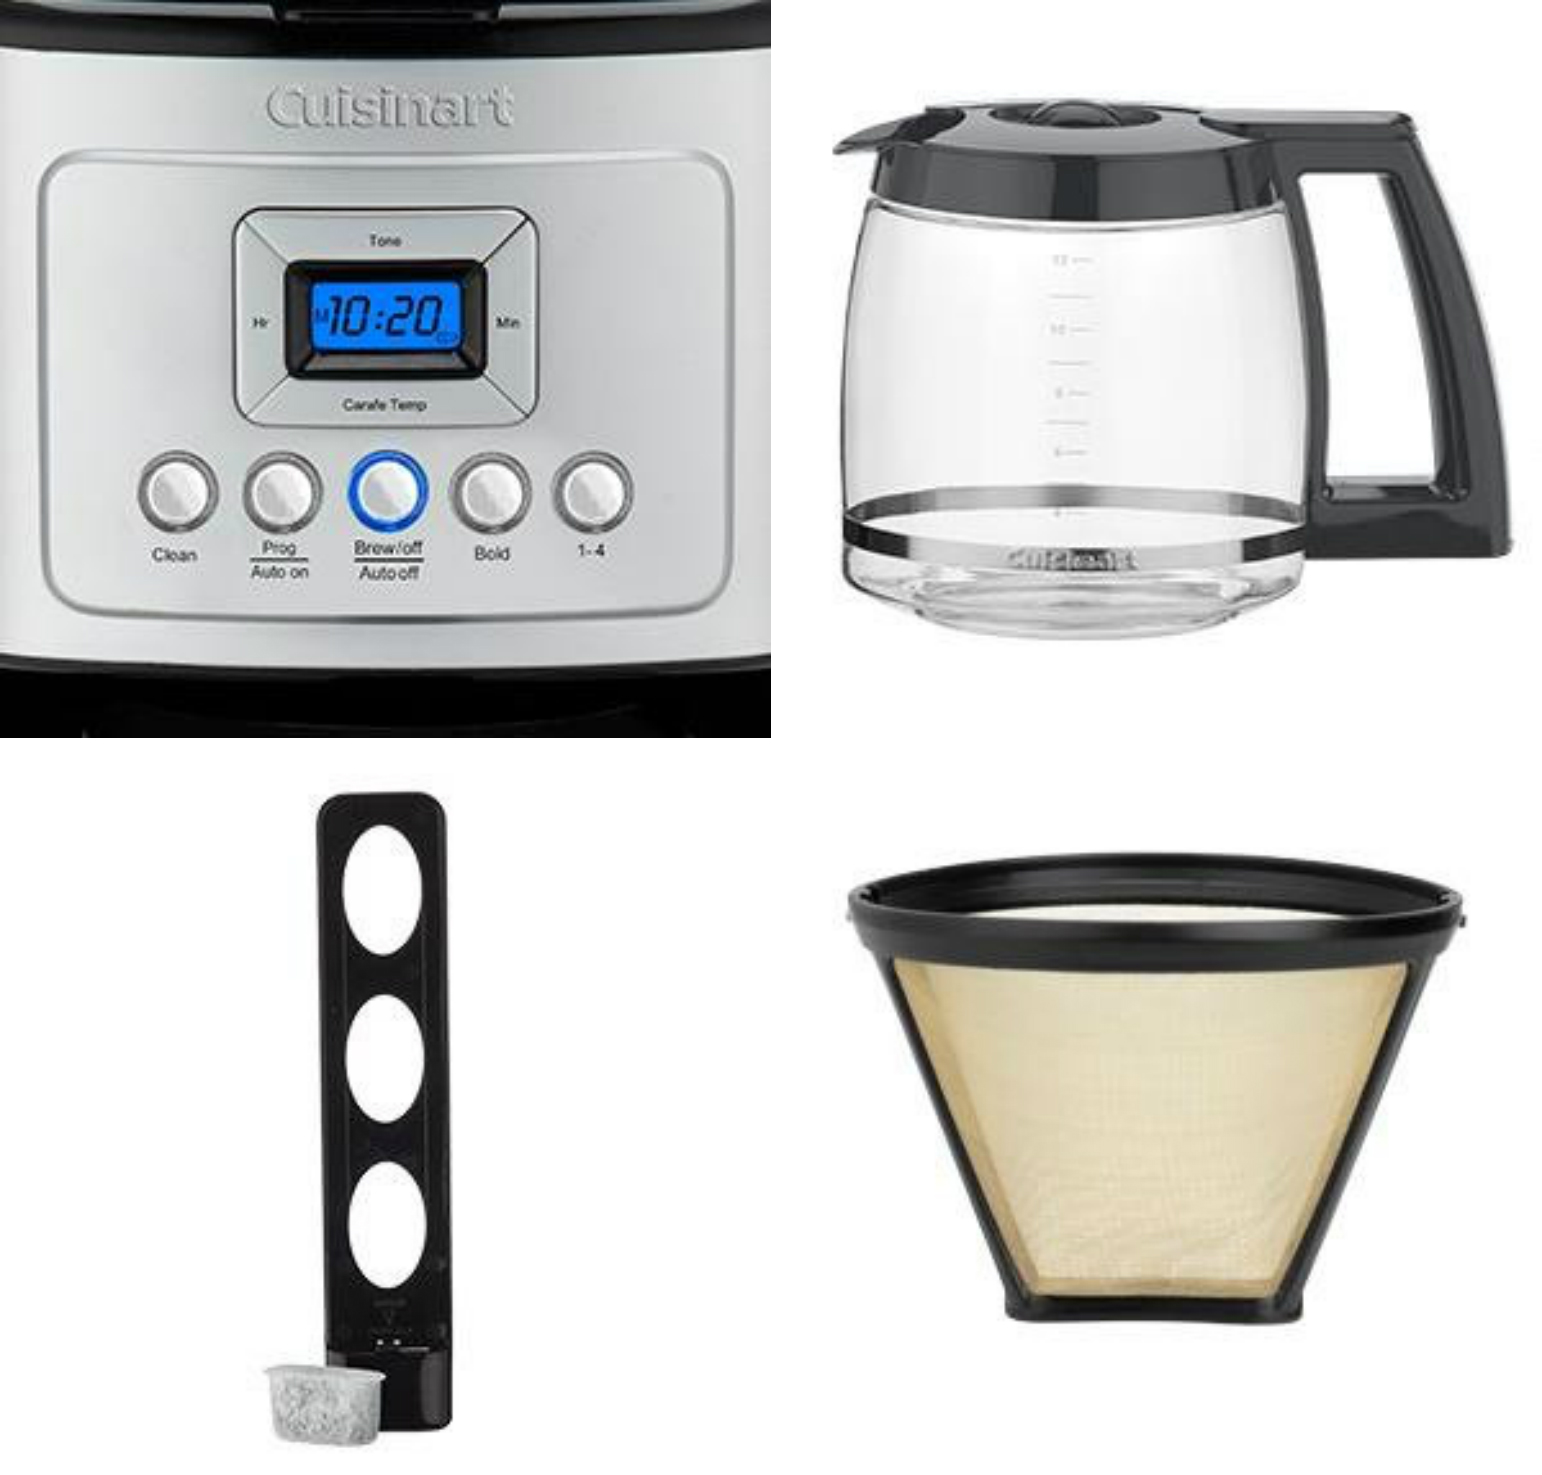 Cuisinart Coffee Maker Cleaning Light : Jesse Bluma at Pointe Viven: Your Coffee Maker Buying Guide by Jesse Bluma at Pointe Viven